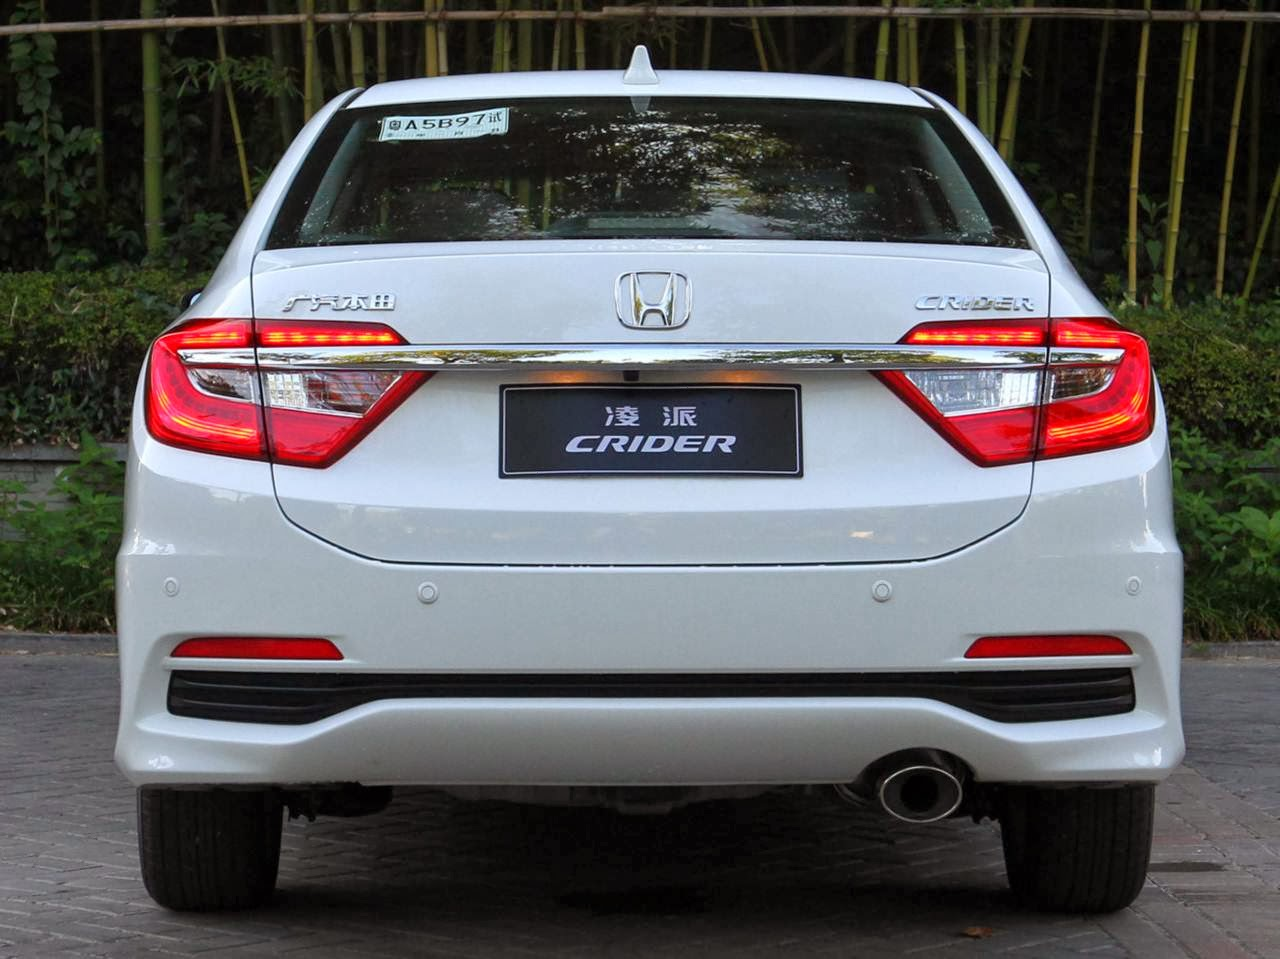 Zuyus Auto: The new Honda City 2014